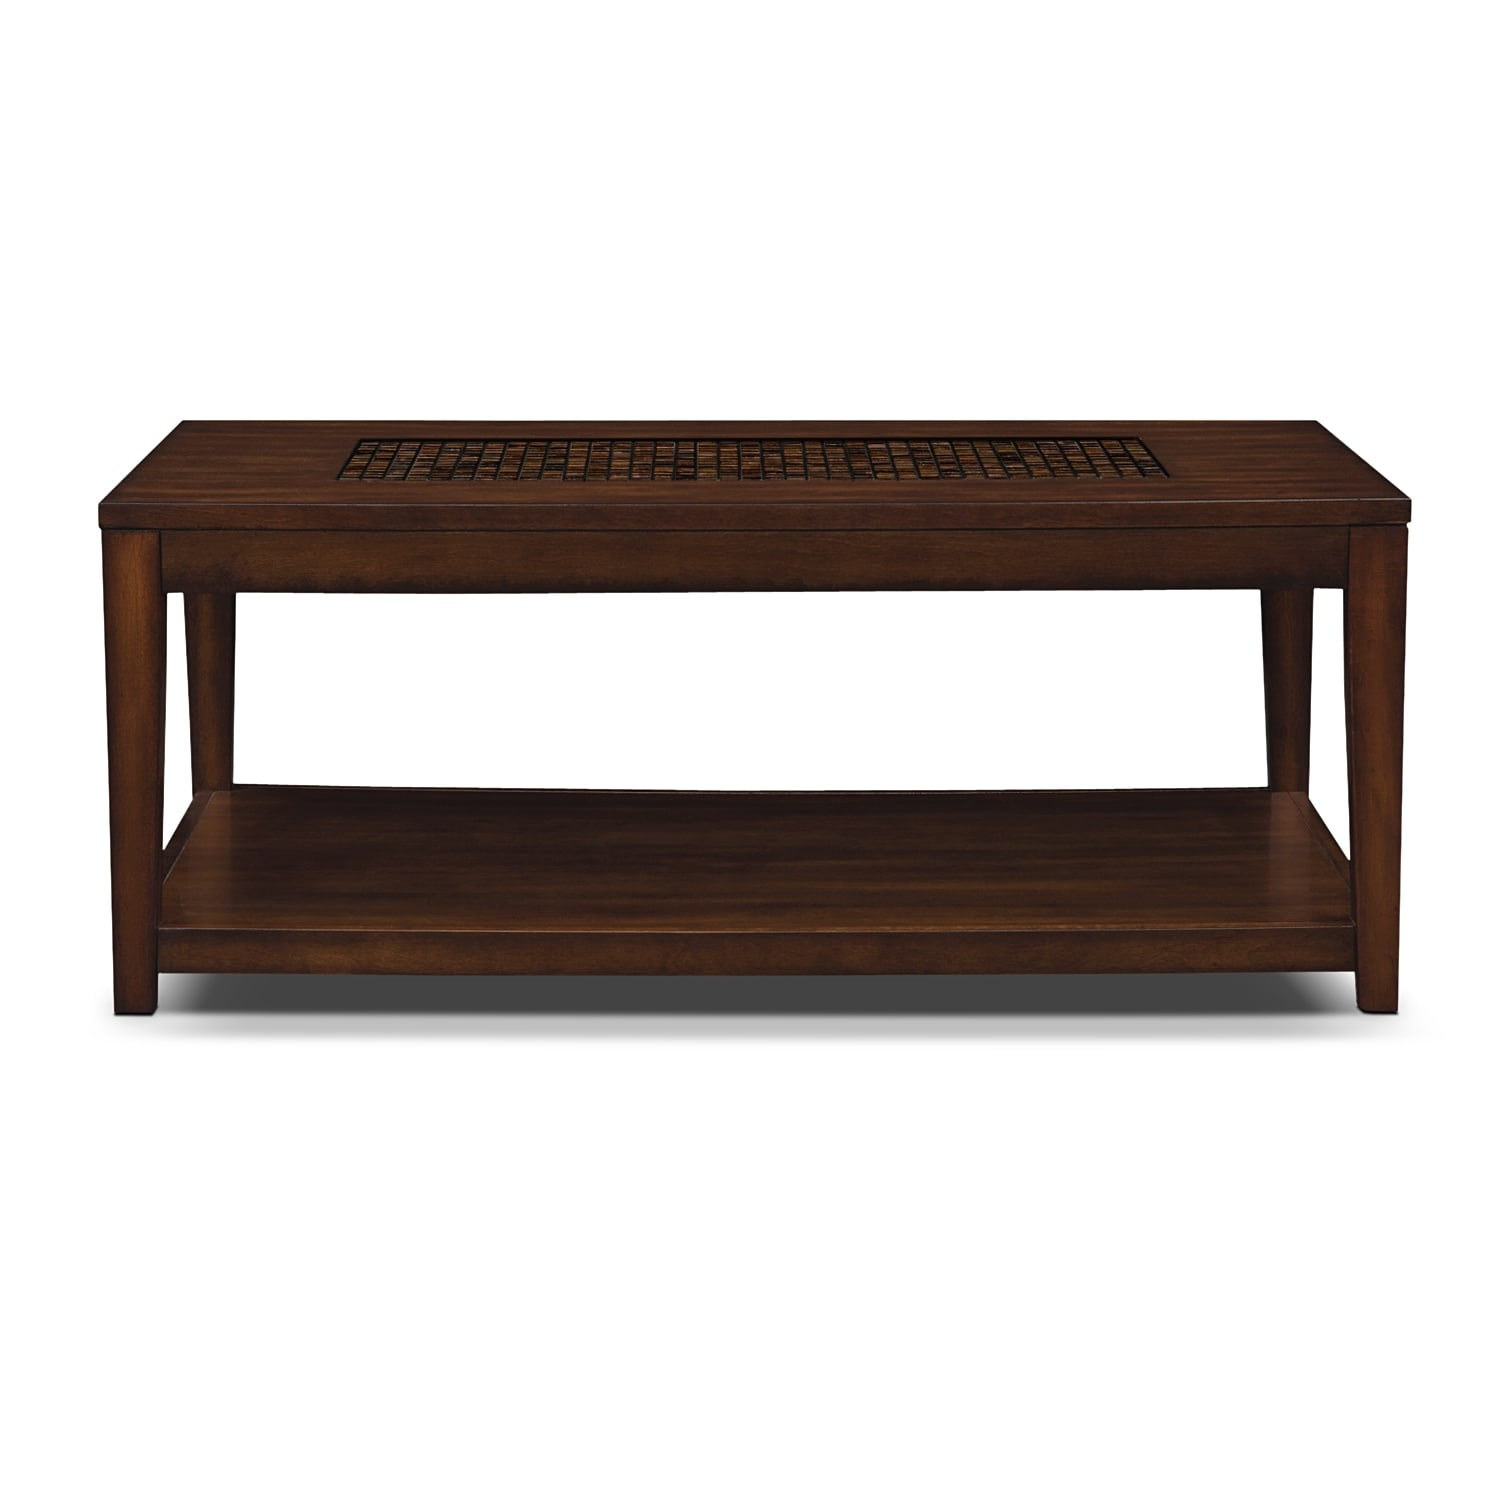 Carson cocktail table brown american signature furniture for Signature furniture